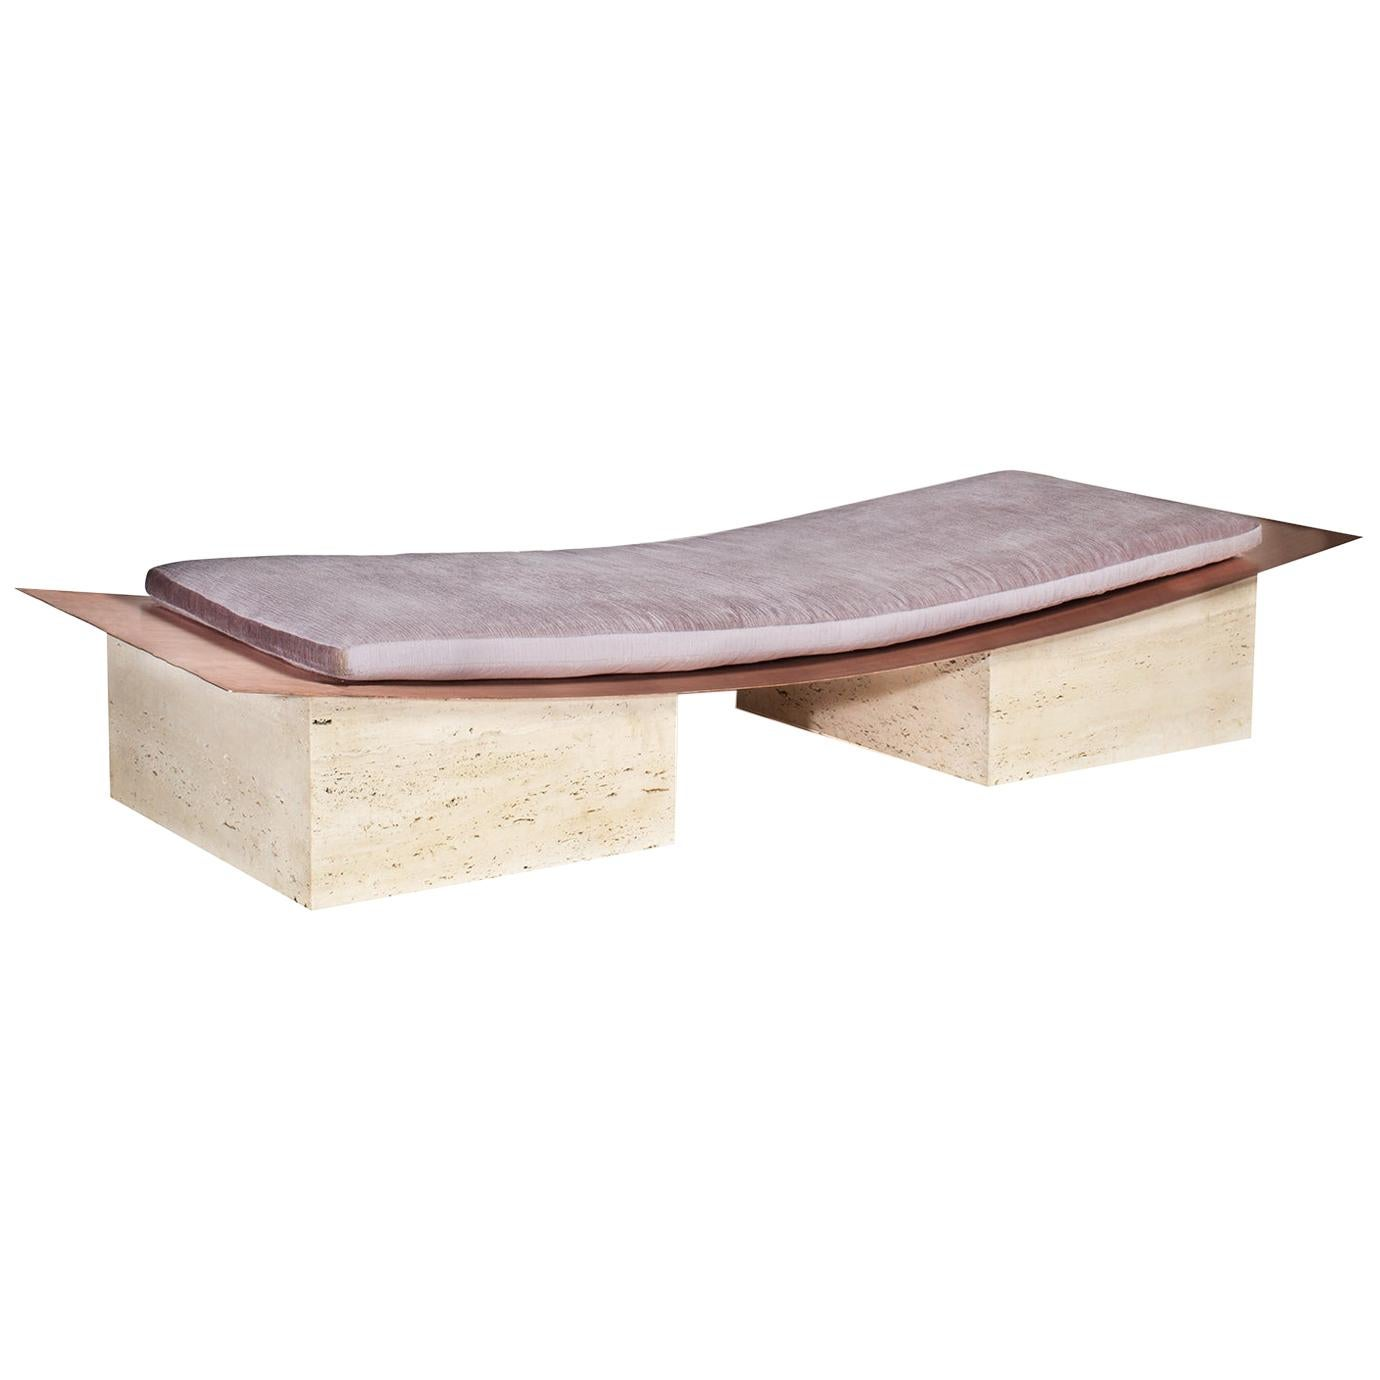 Chord, Contemporary Indoor/Outdoor Travertine and Copper Daybed by Laun